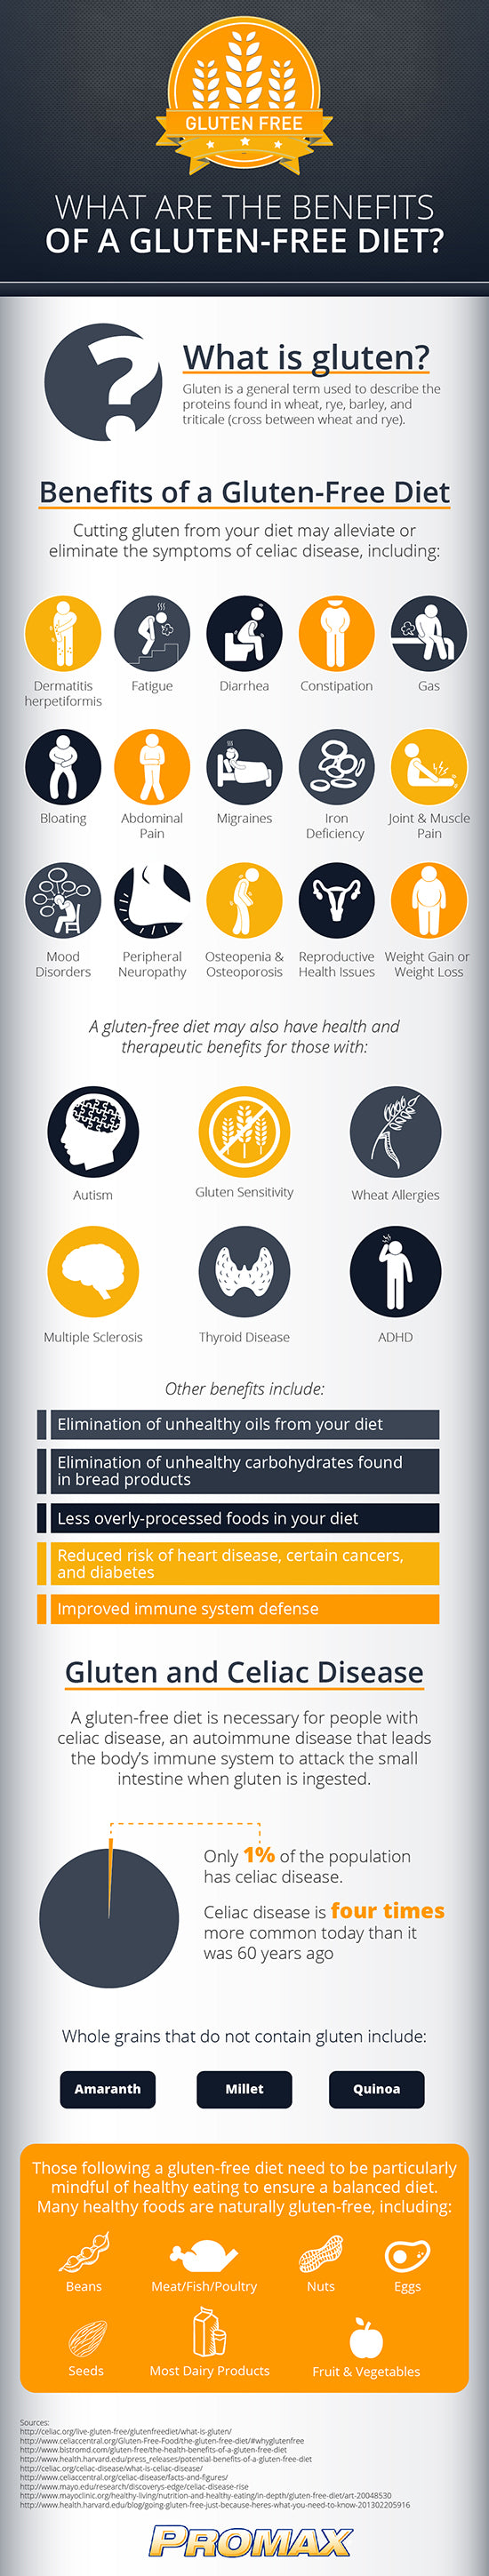 Learn the Benefits of a Gluten Free Diet